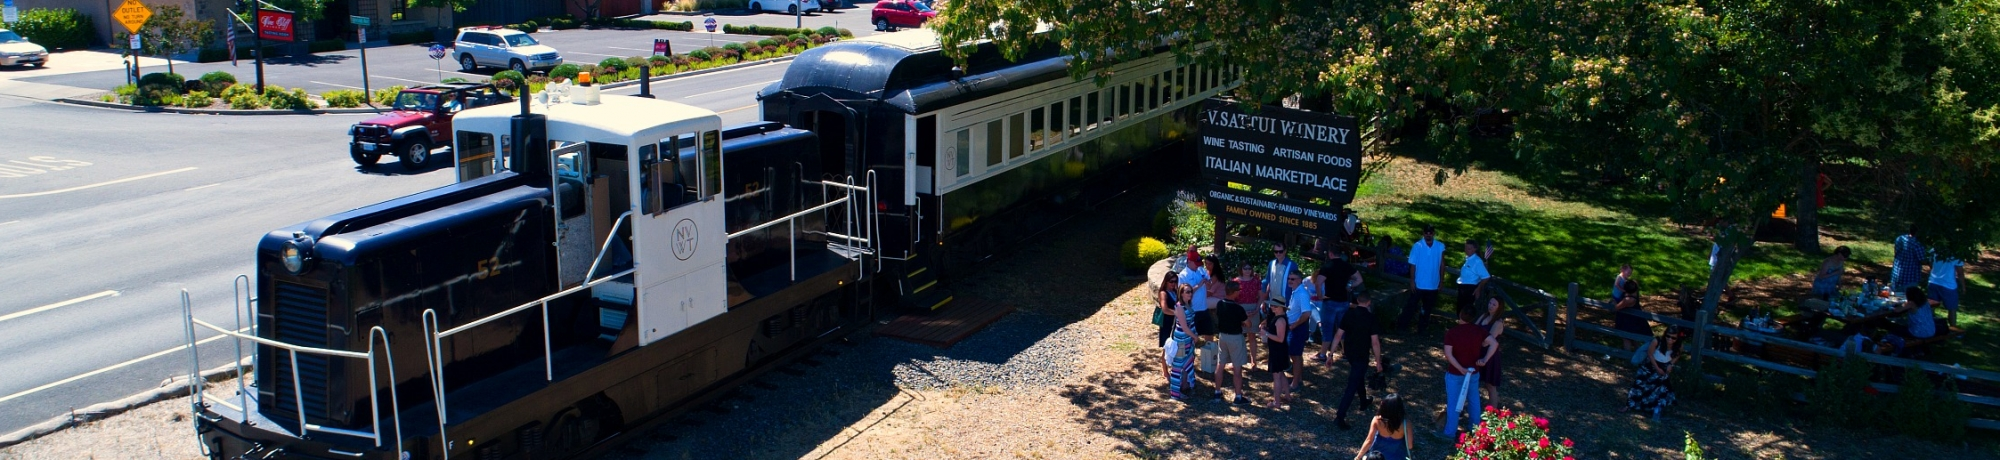 Napa Valley Wine Train stopped at a winery in the summer as a group of people prepare to board